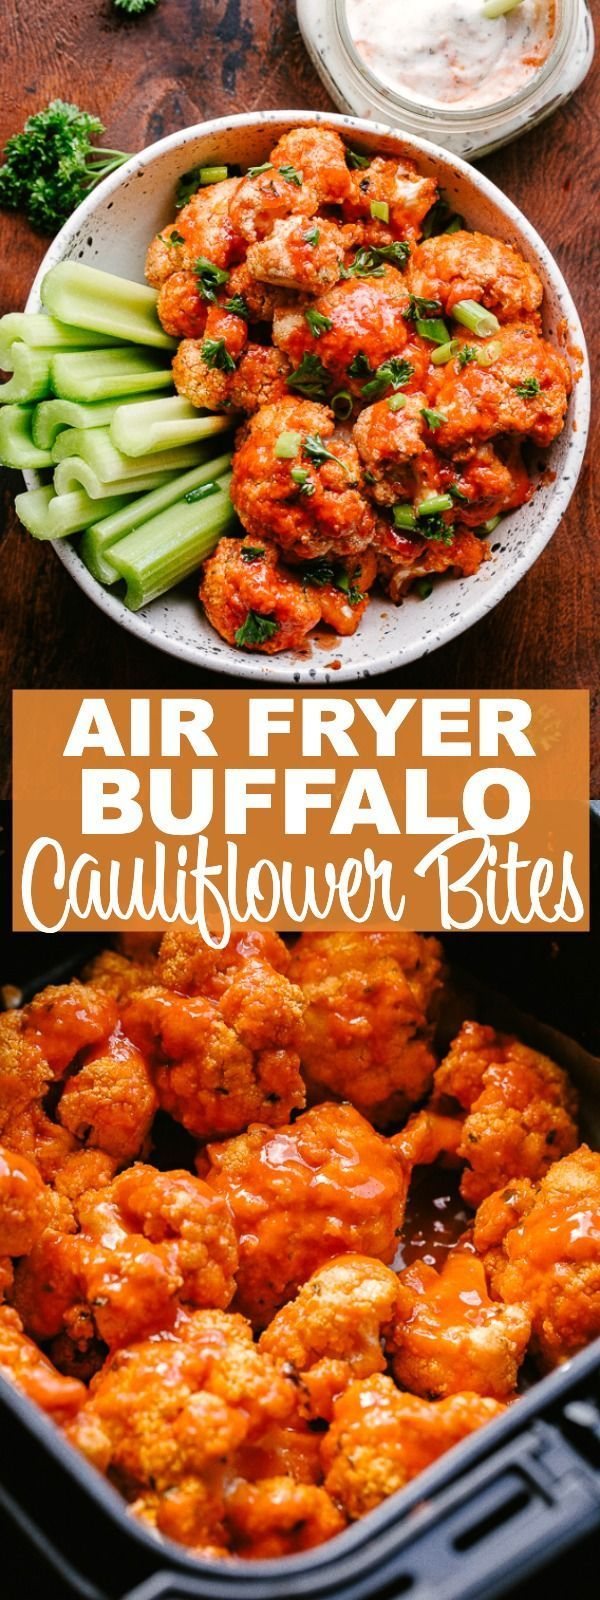 Air Fryer Buffalo Cauliflower Bites - Easy, healthy, perfectly spicy Buffalo Cau... - Game Day Recipes - #Air #Bites #Buffalo #Cau #Cauliflower #Day #easy #Fryer #Game #healthy #perfectly #Recipes #Spicy #airfryerrecipes